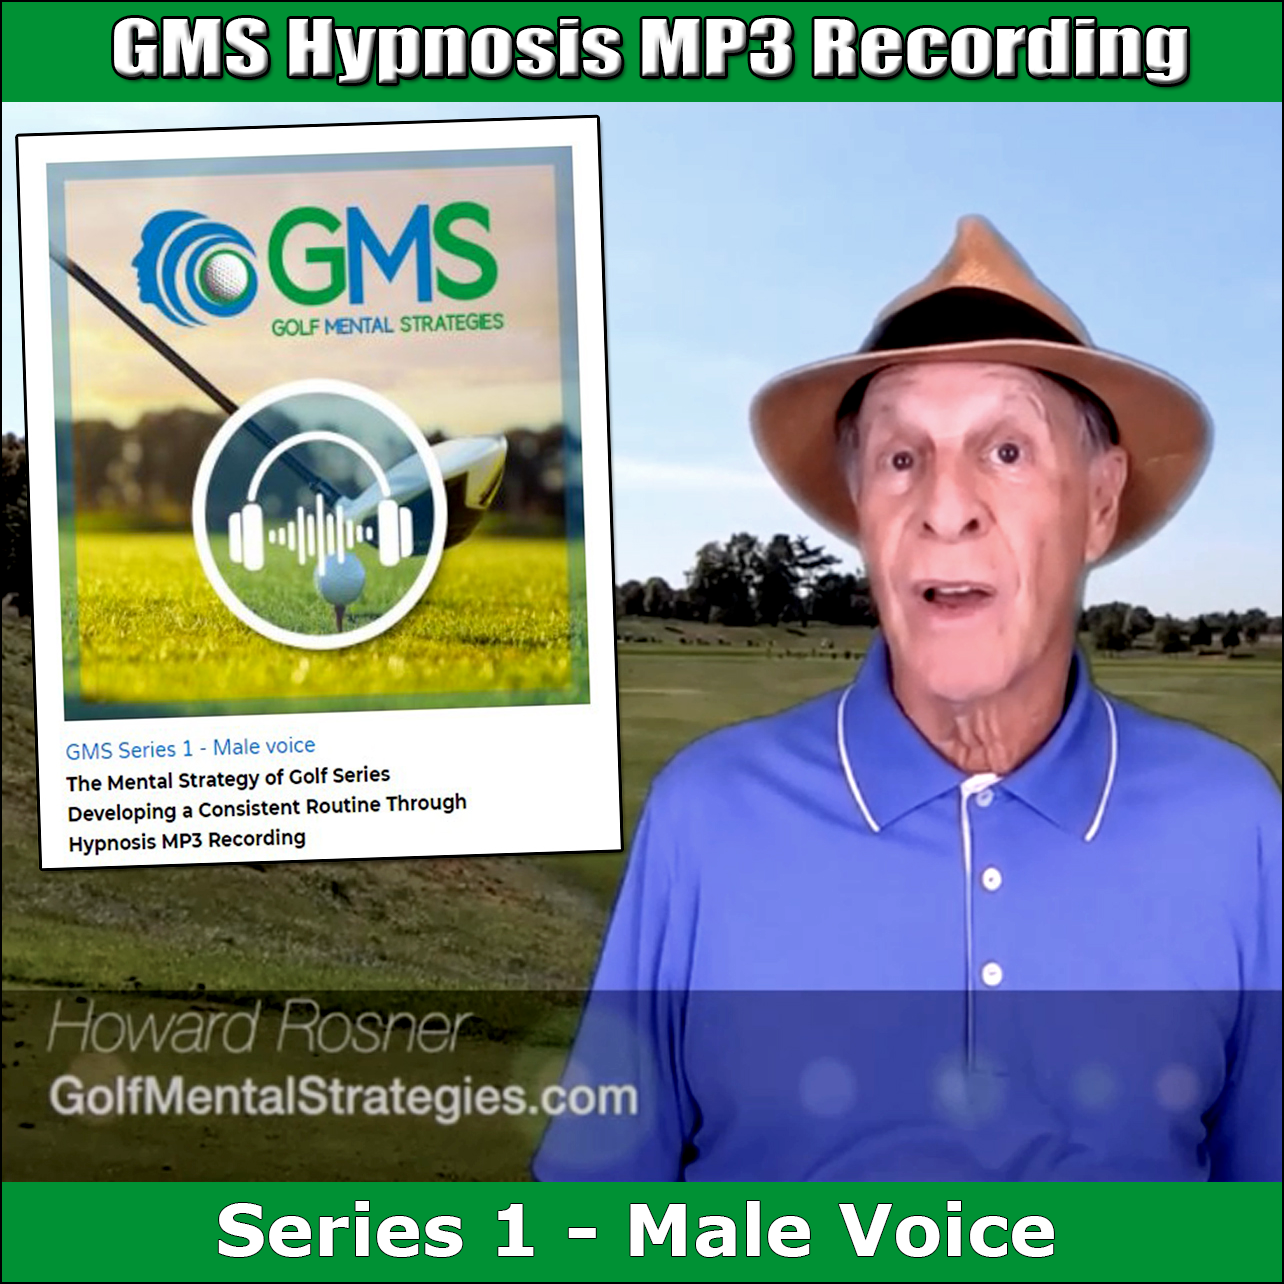 GMS Hypnosis MP3 Recording Series 1 – Male Voice